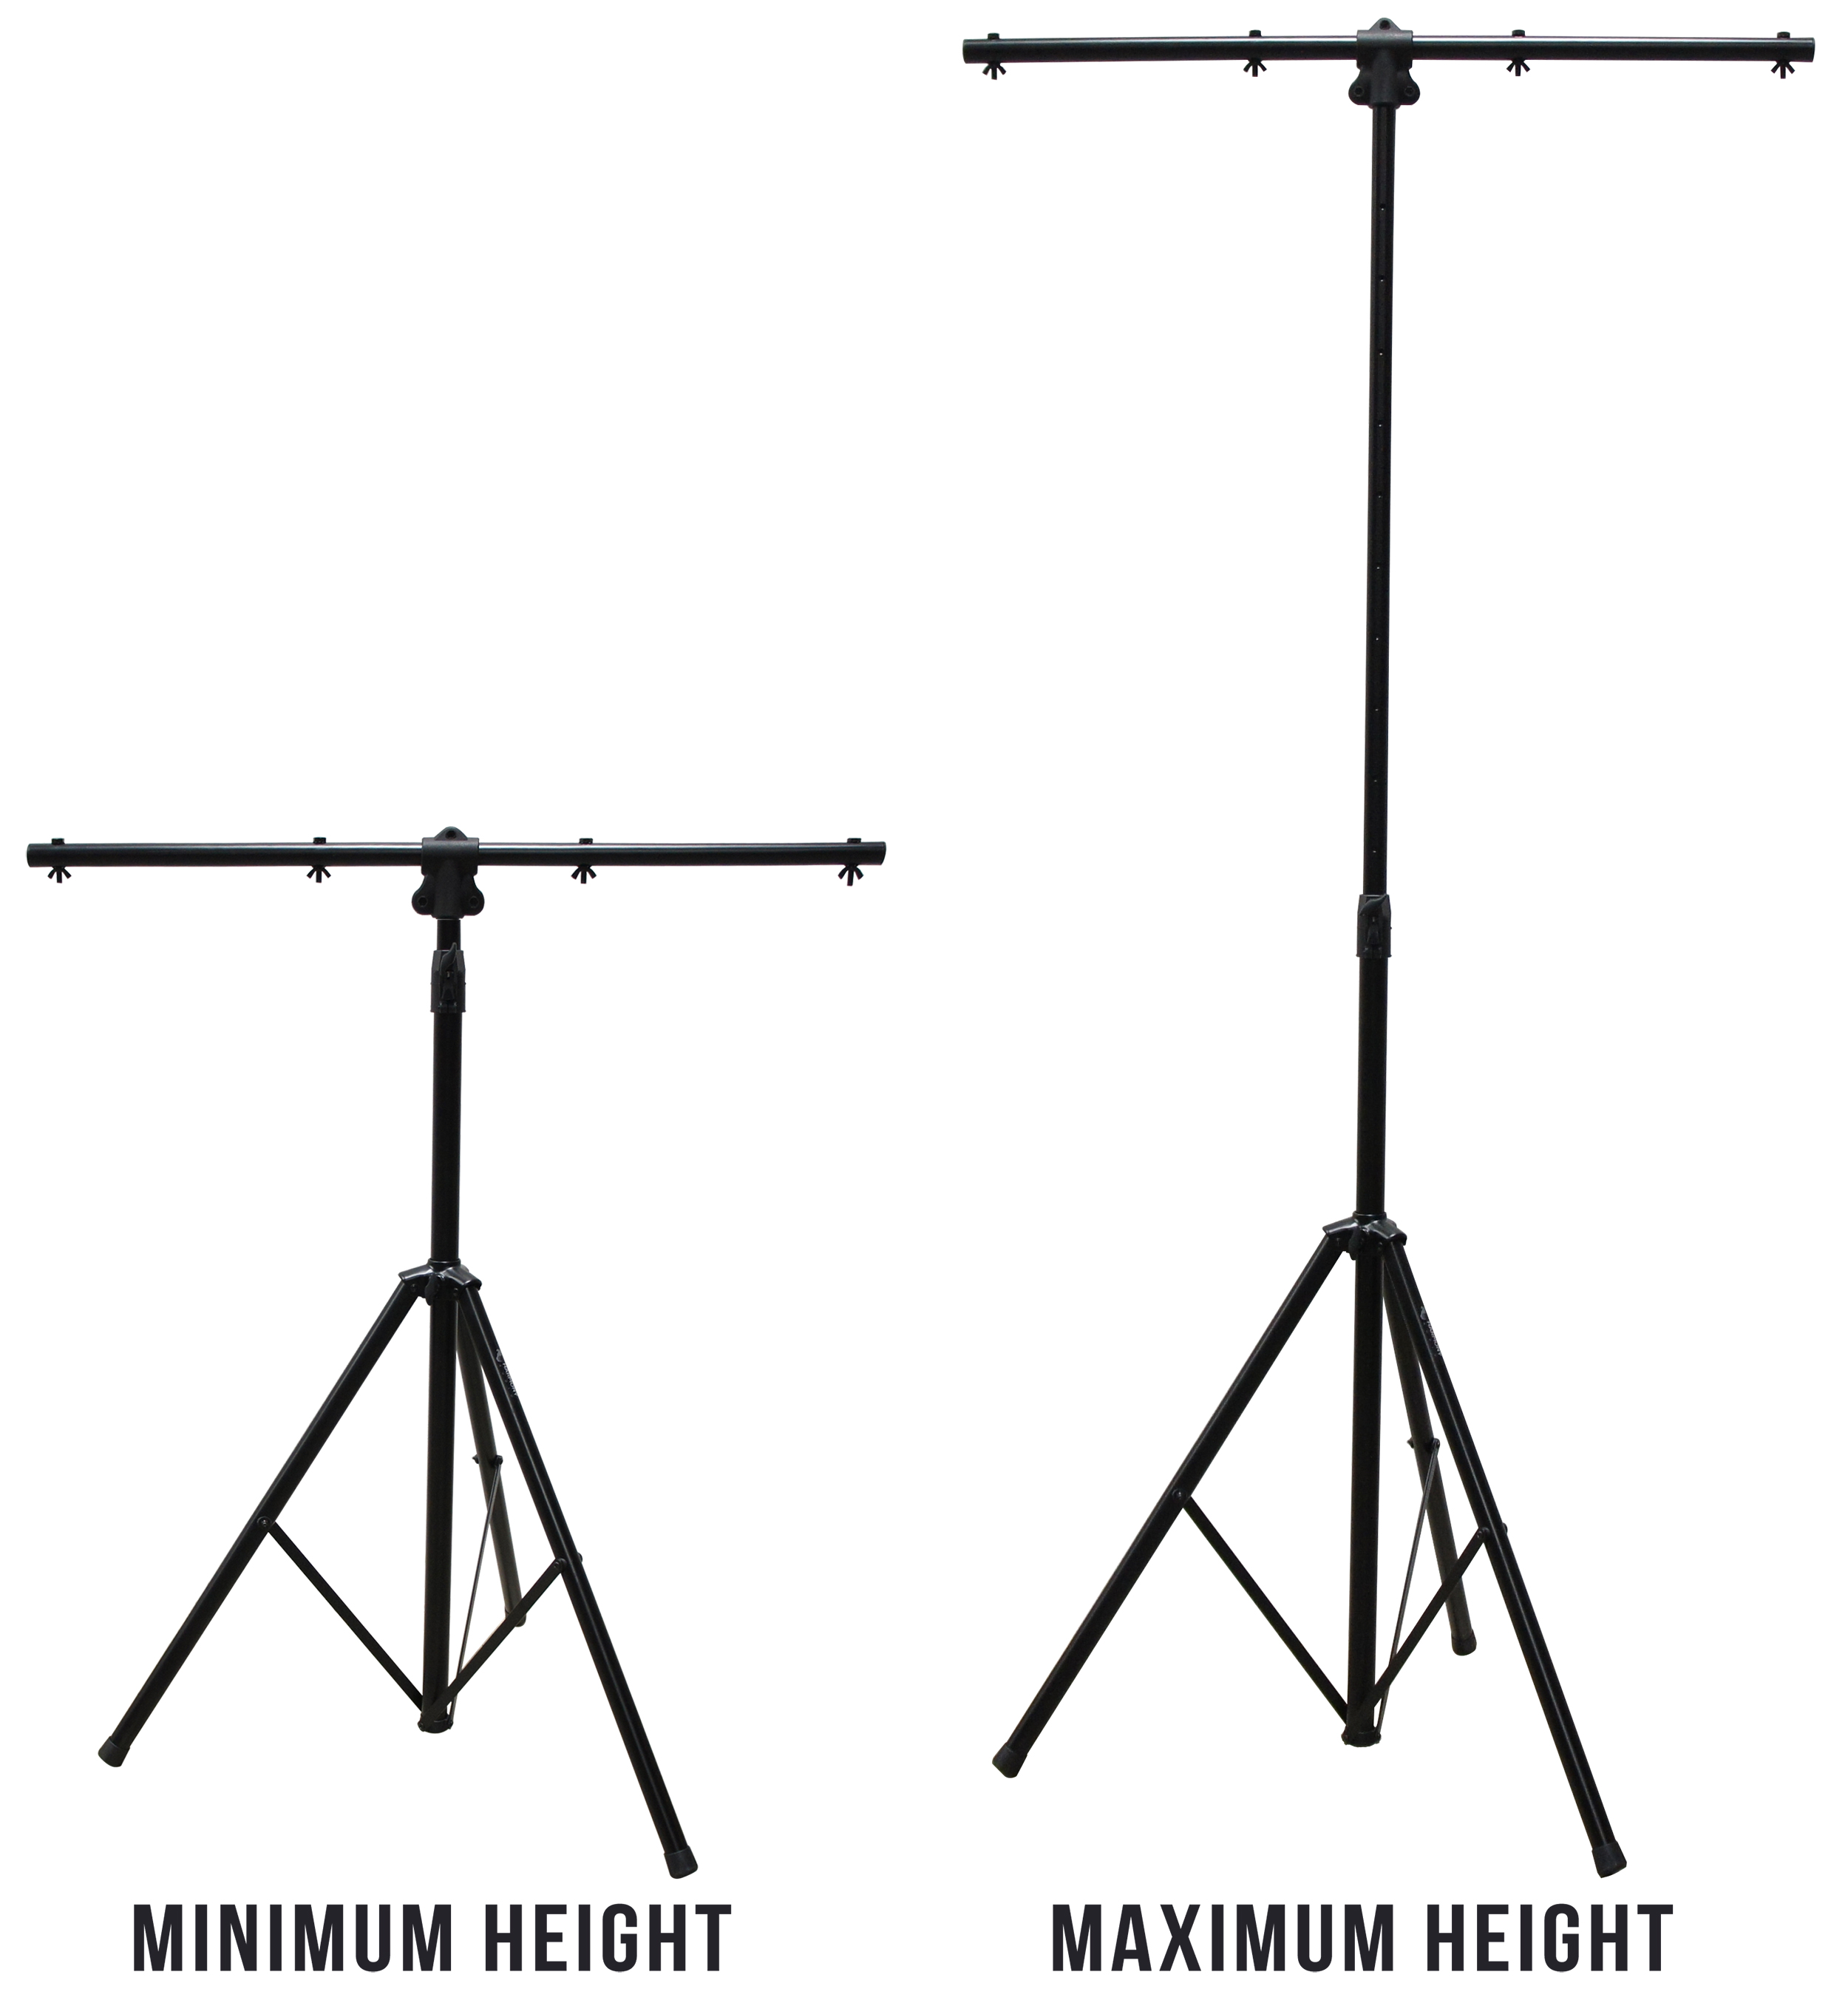 Harmony Audio Ha Tbara Pro Audio Dj Lighting Tripod Amp T Bar Light Stand With Air Brake Drop